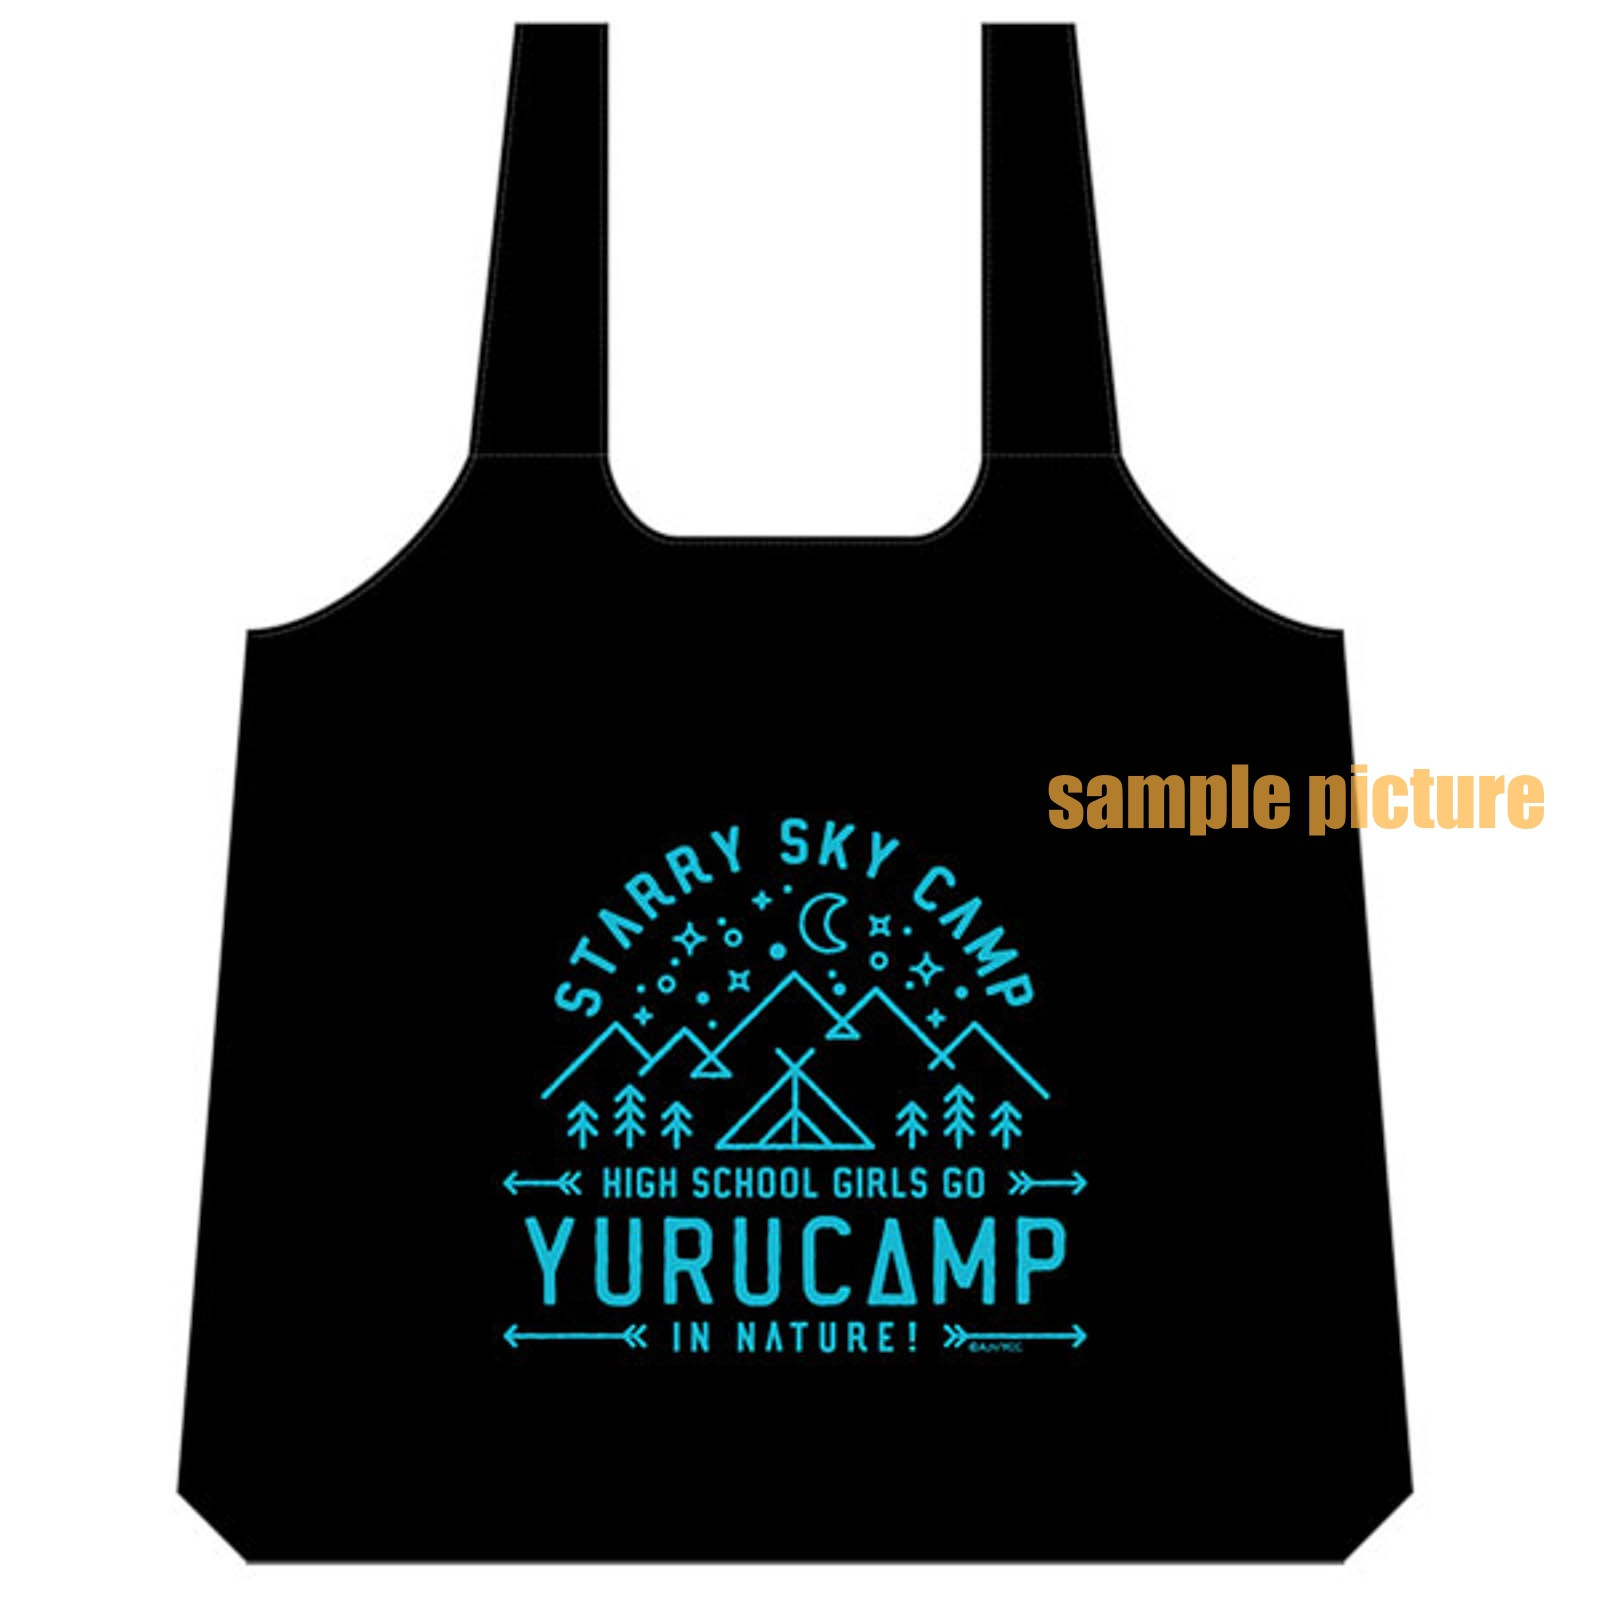 Yuru Camp Eco-bag (Reusable bag) JAPAN ANIME